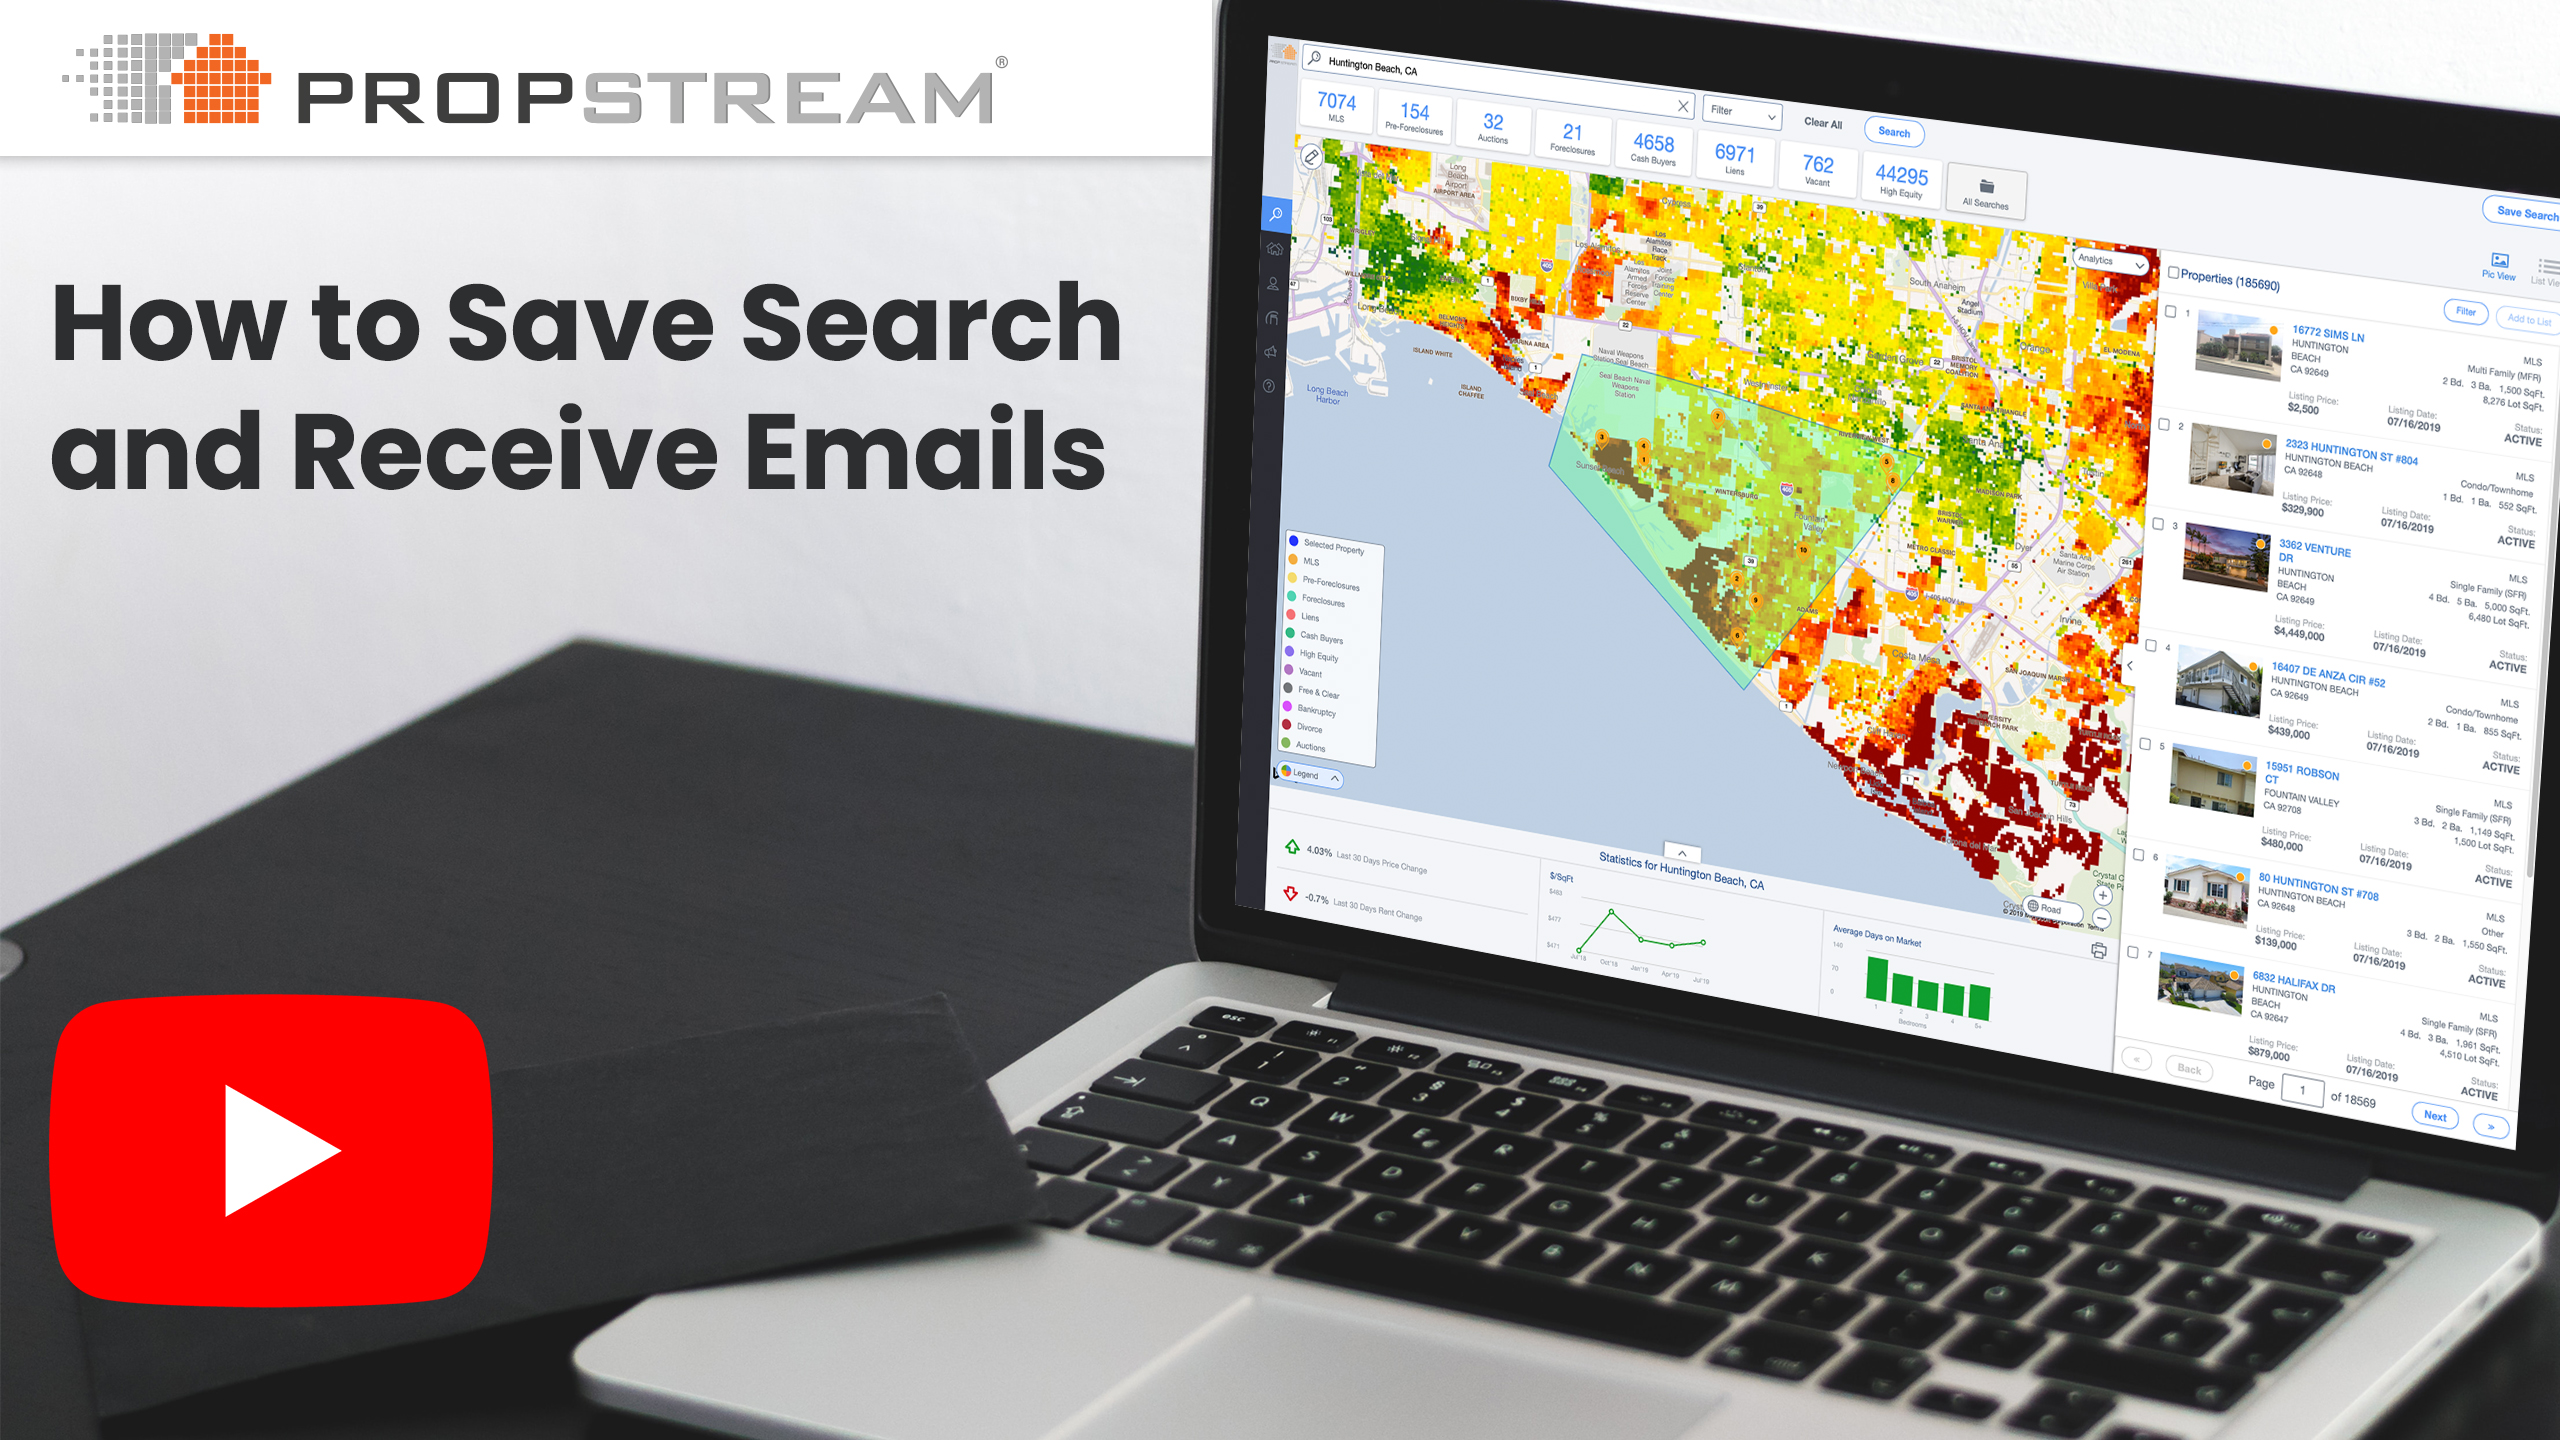 How to Save Search and Receive Emails